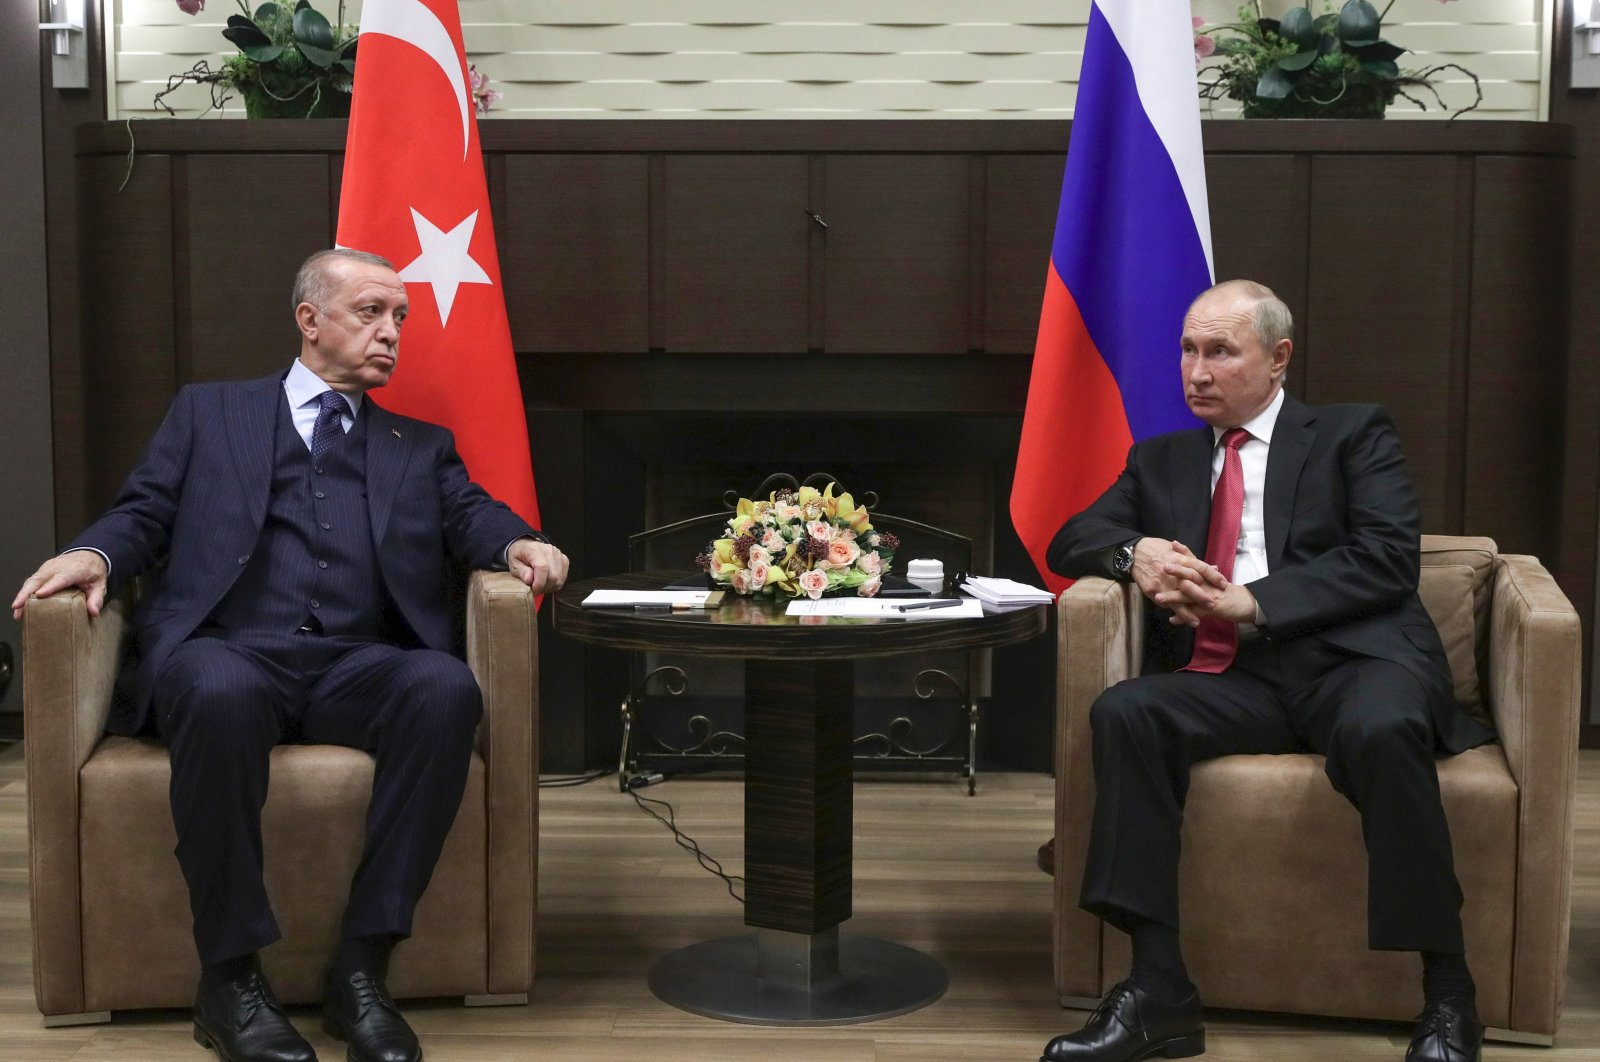 President Recep Tayyip Erdoğan and Russian President Vladimir Putin talk to each other during their meeting in the Bocharov Ruchei residence in the Black Sea resort of Sochi, Russia, Sept. 29, 2021. (AP File Photo)